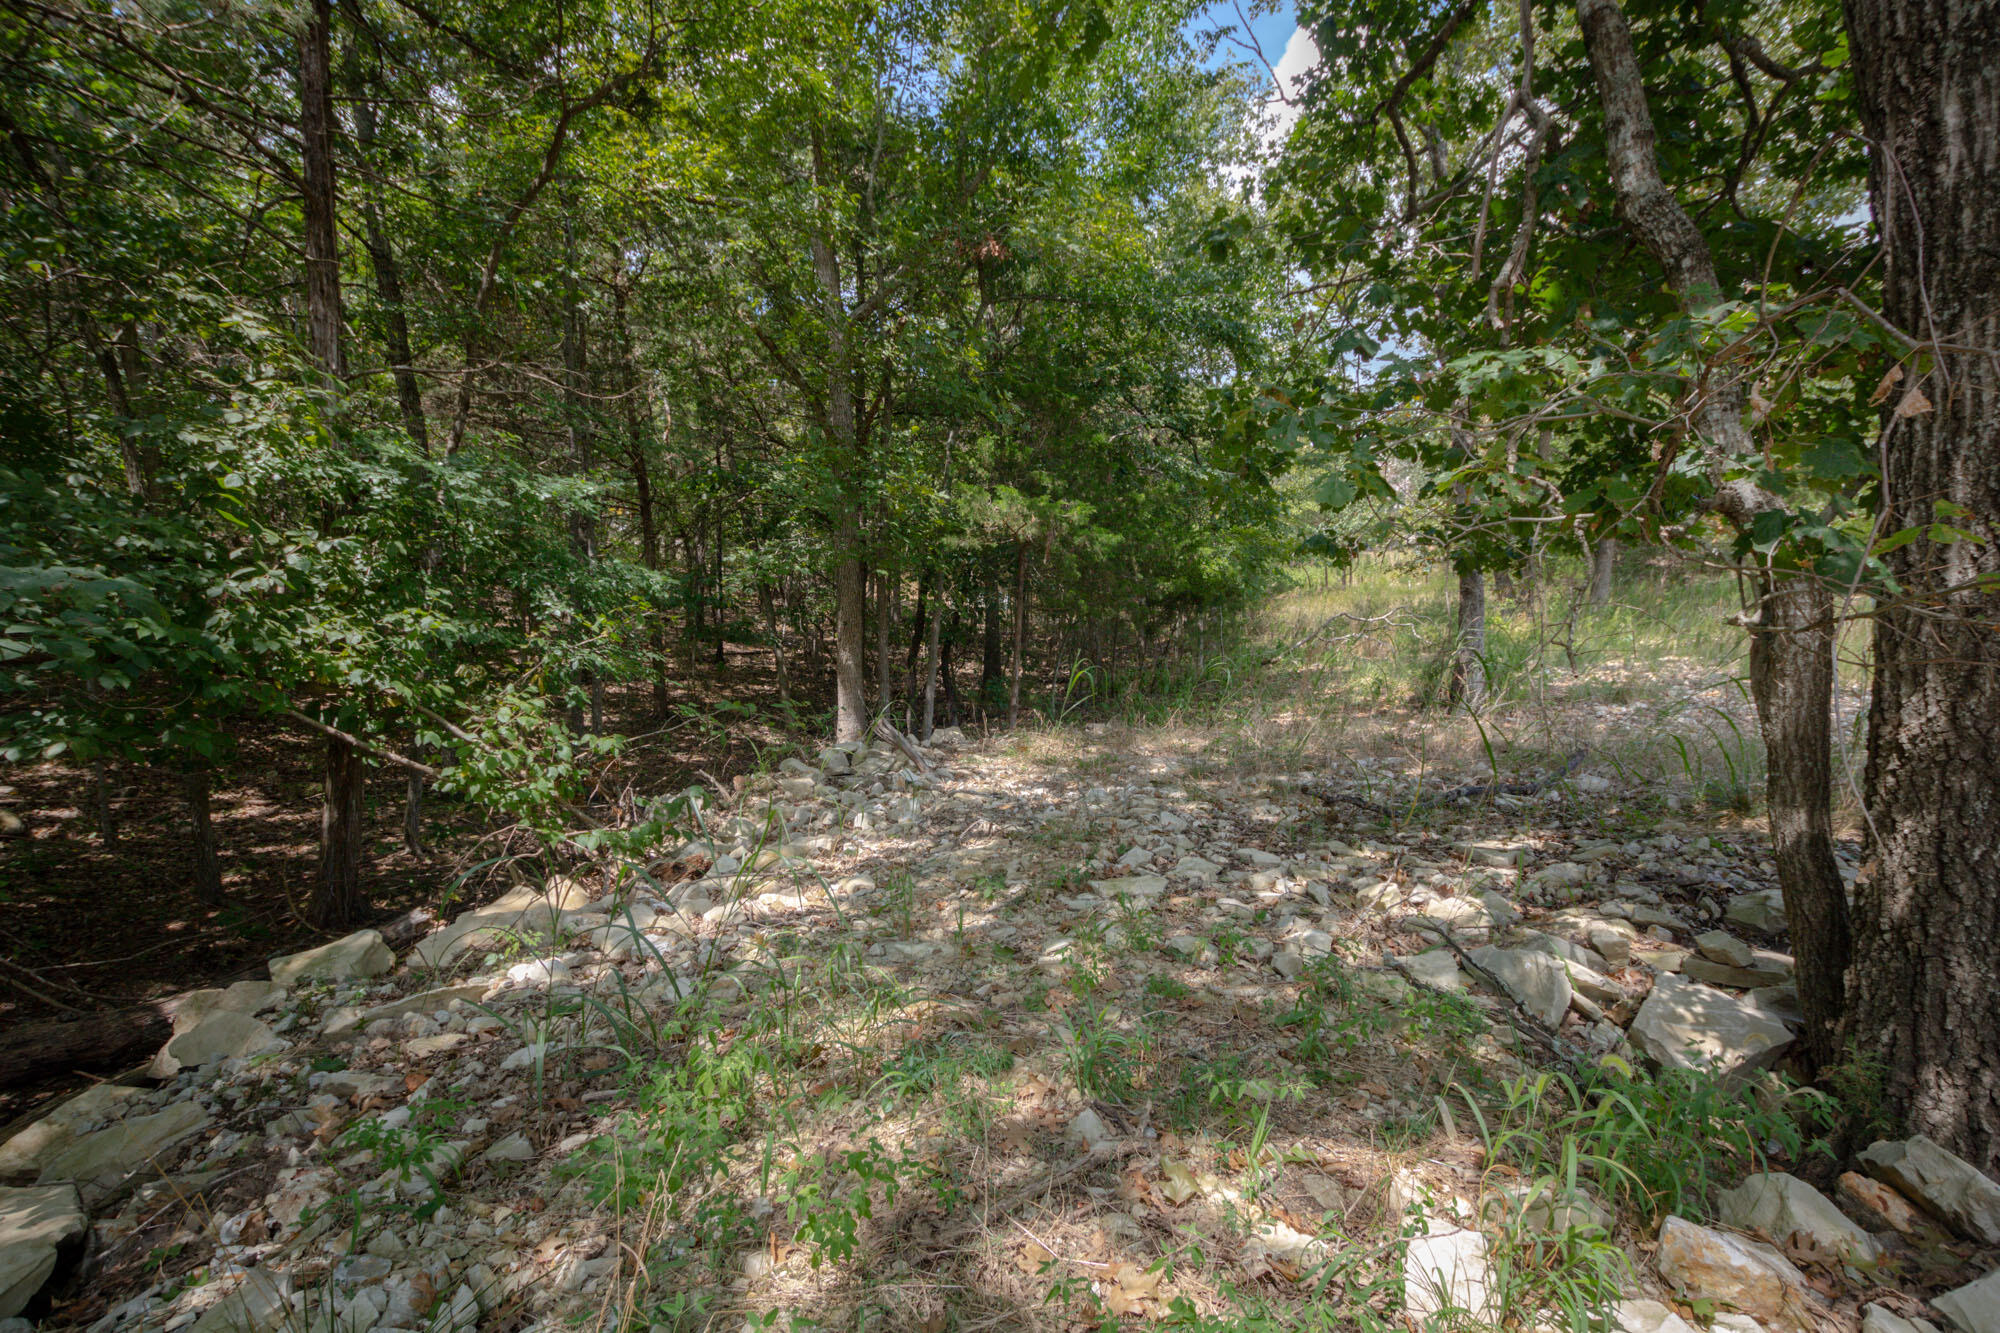 Tbd Lot 9 Overlook Phase Kimberling City, MO 65686